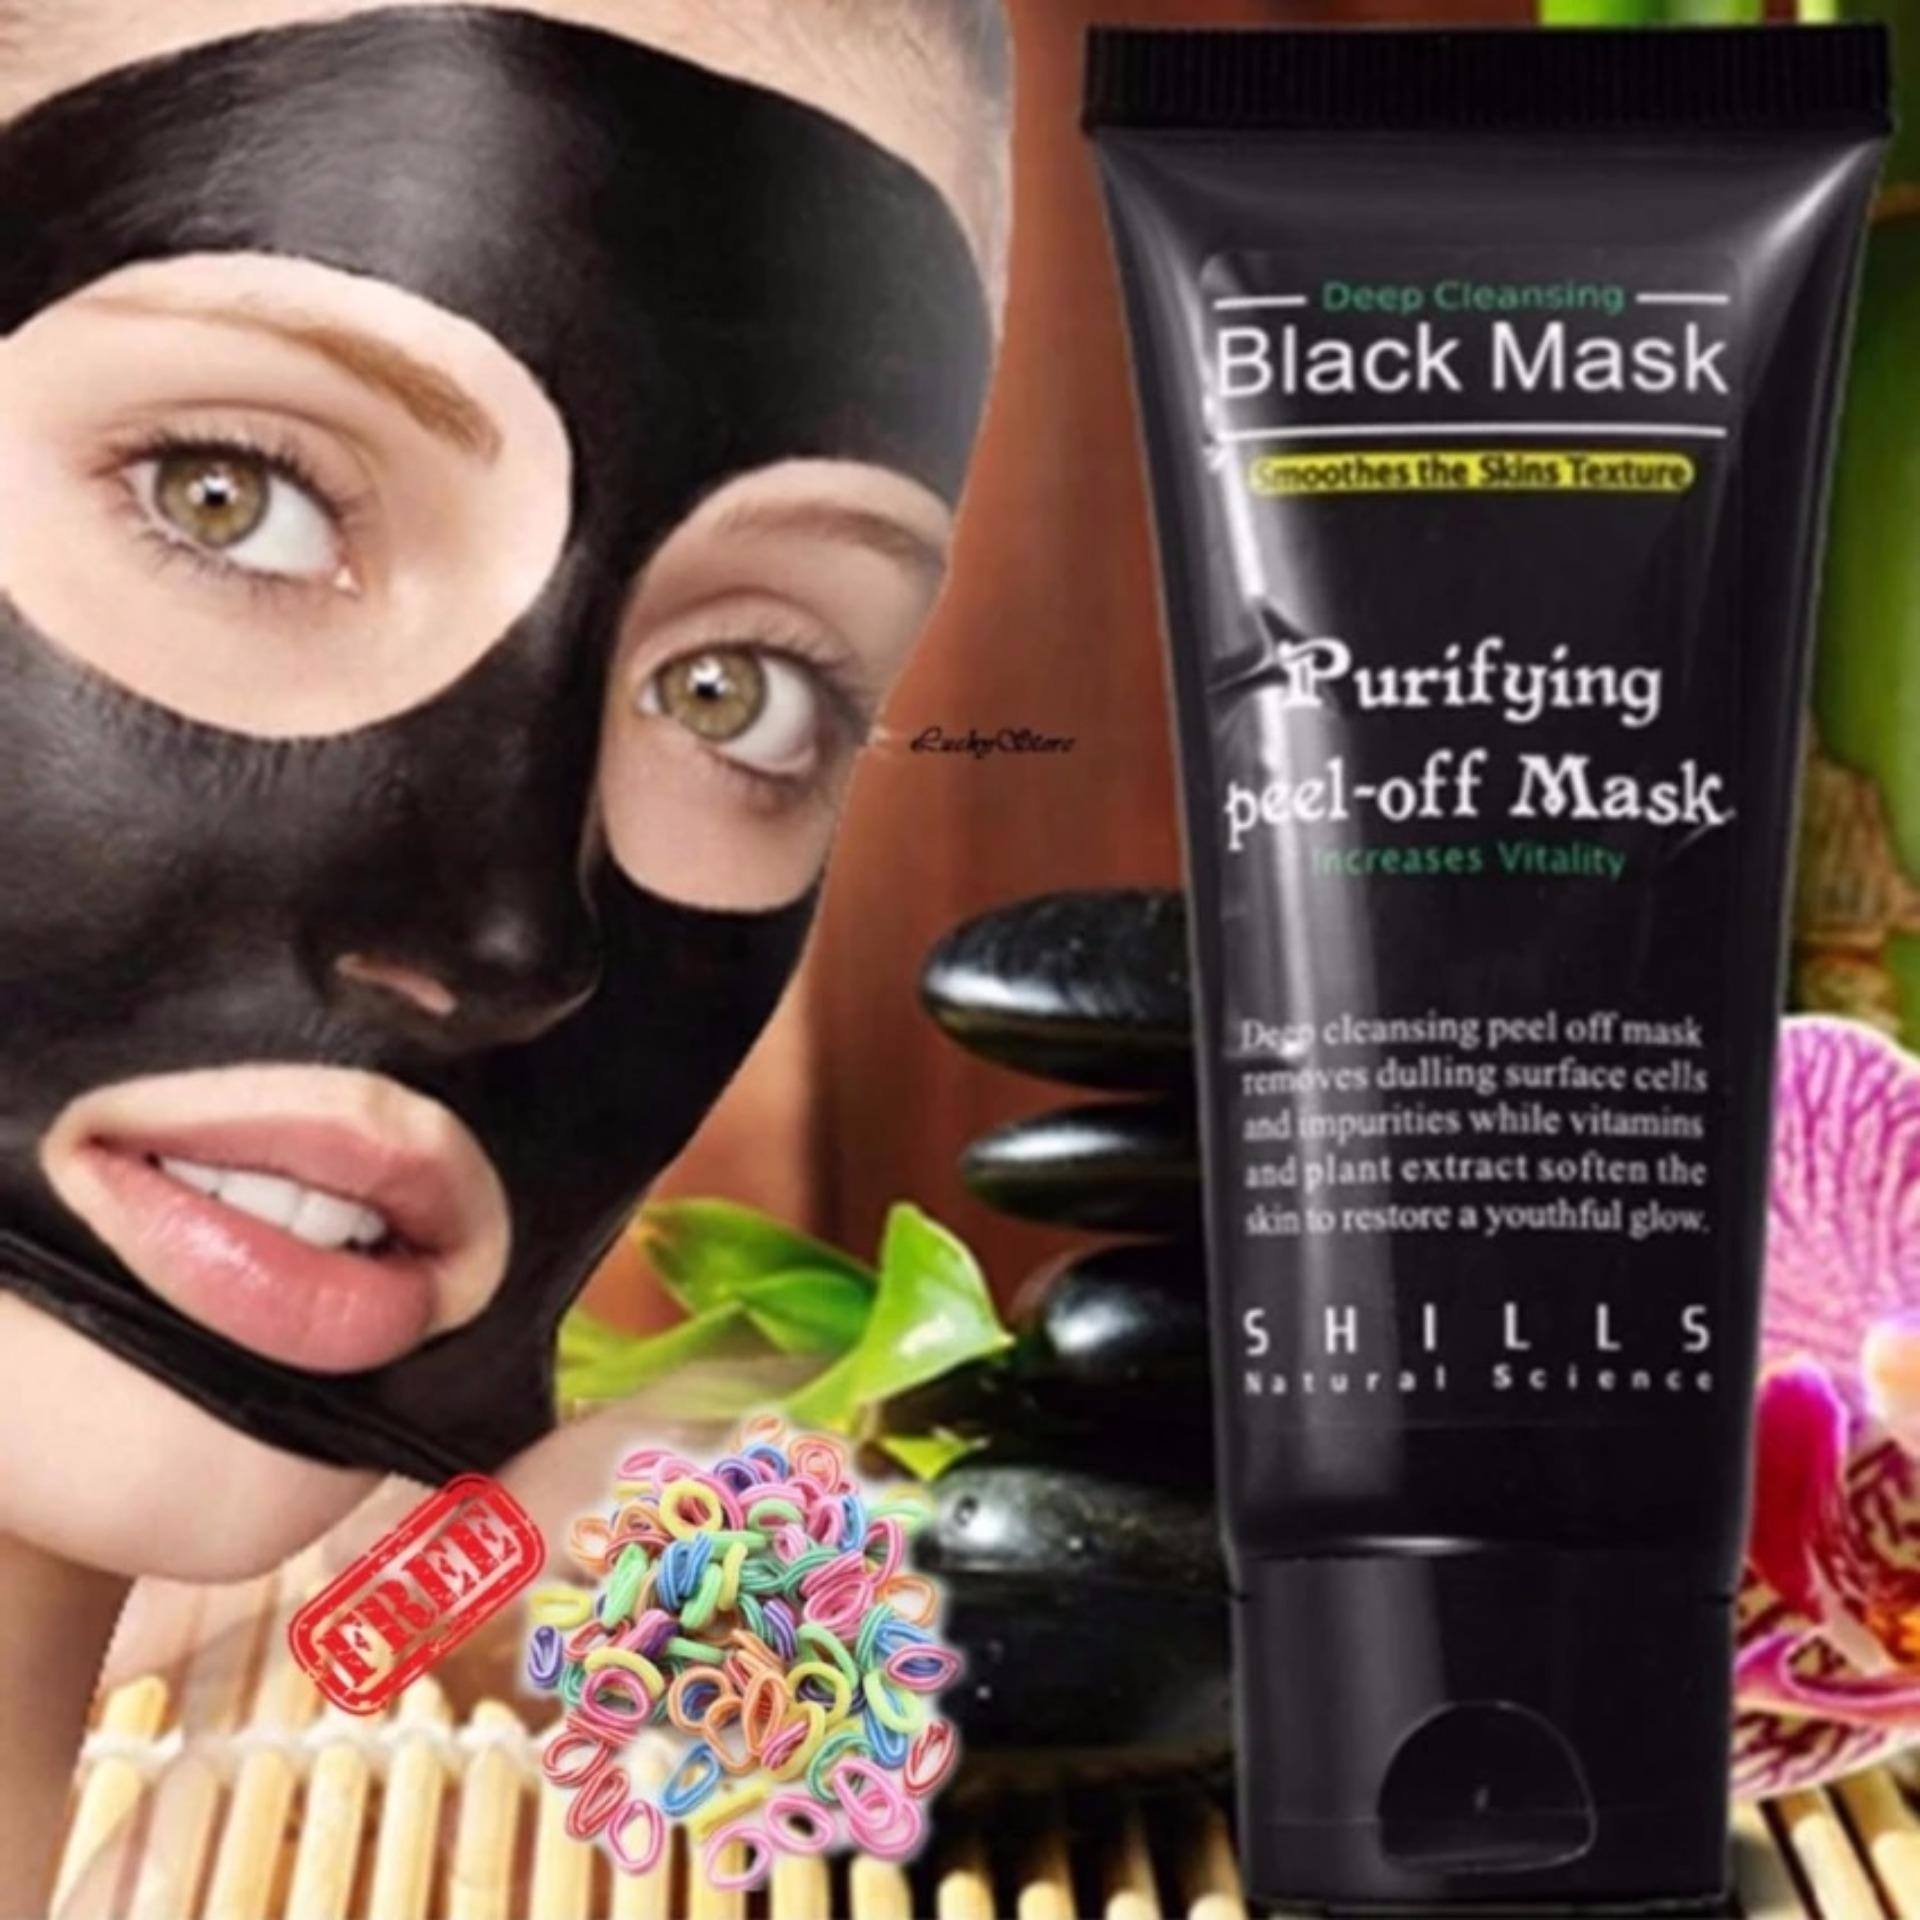 Promo Black Mask Deep Cleansing Purifying Peel Off Mask Masker Pembersih Komedo 1Pcs Free Ikat Rambut 1 Pcs Black